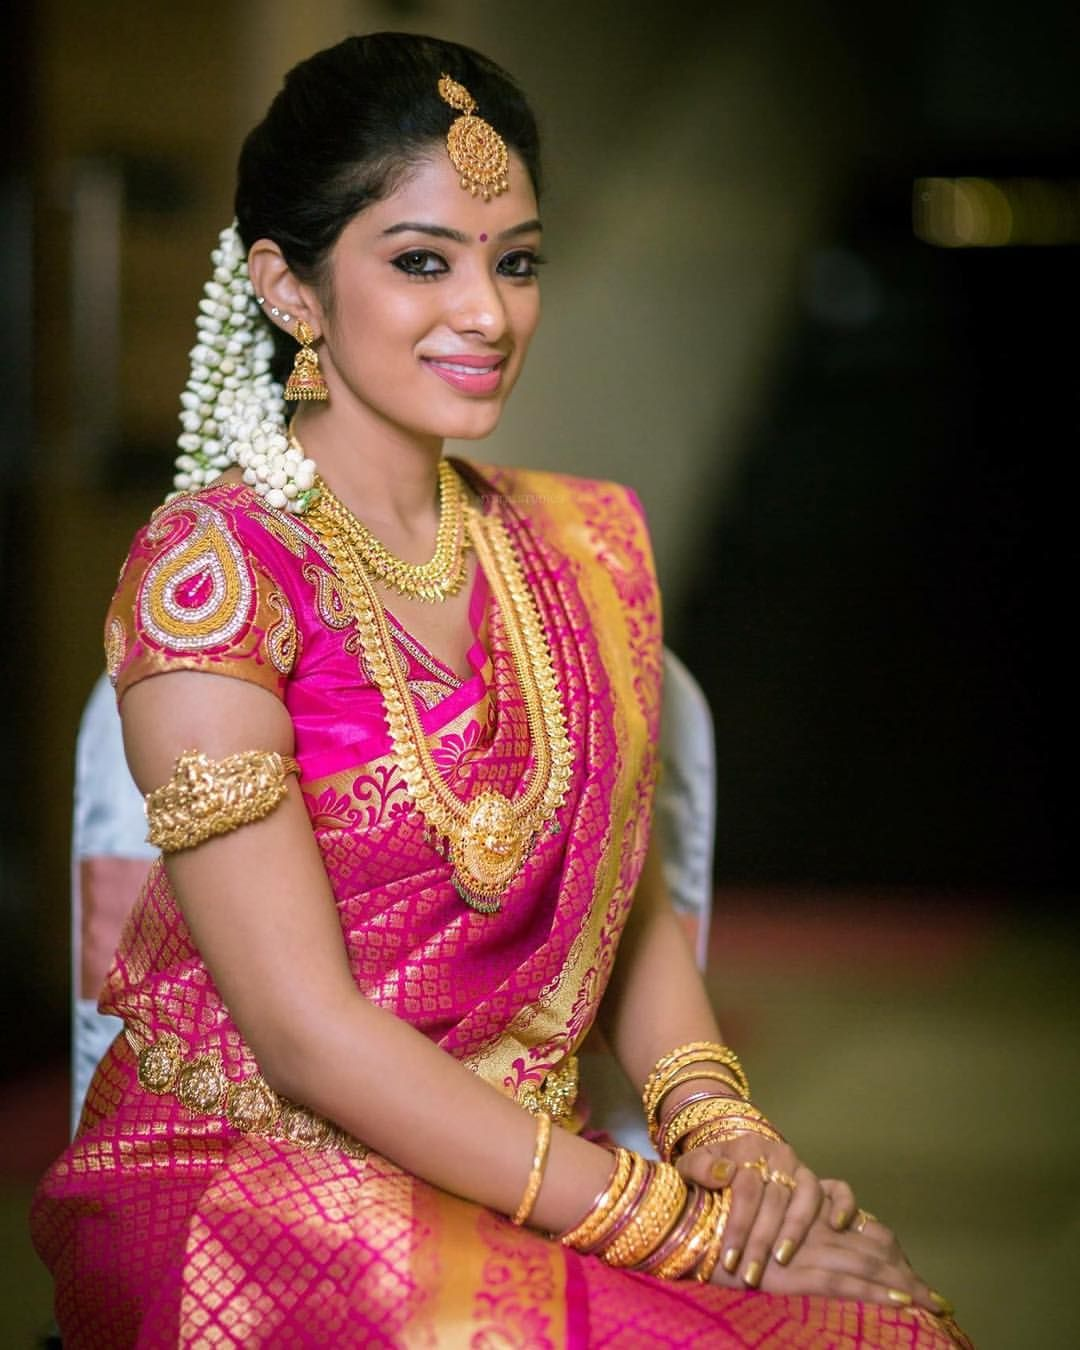 Hindu Indian Wedding Hairstyles: South Indian Bride. Gold Indian Bridal Jewelry.Temple